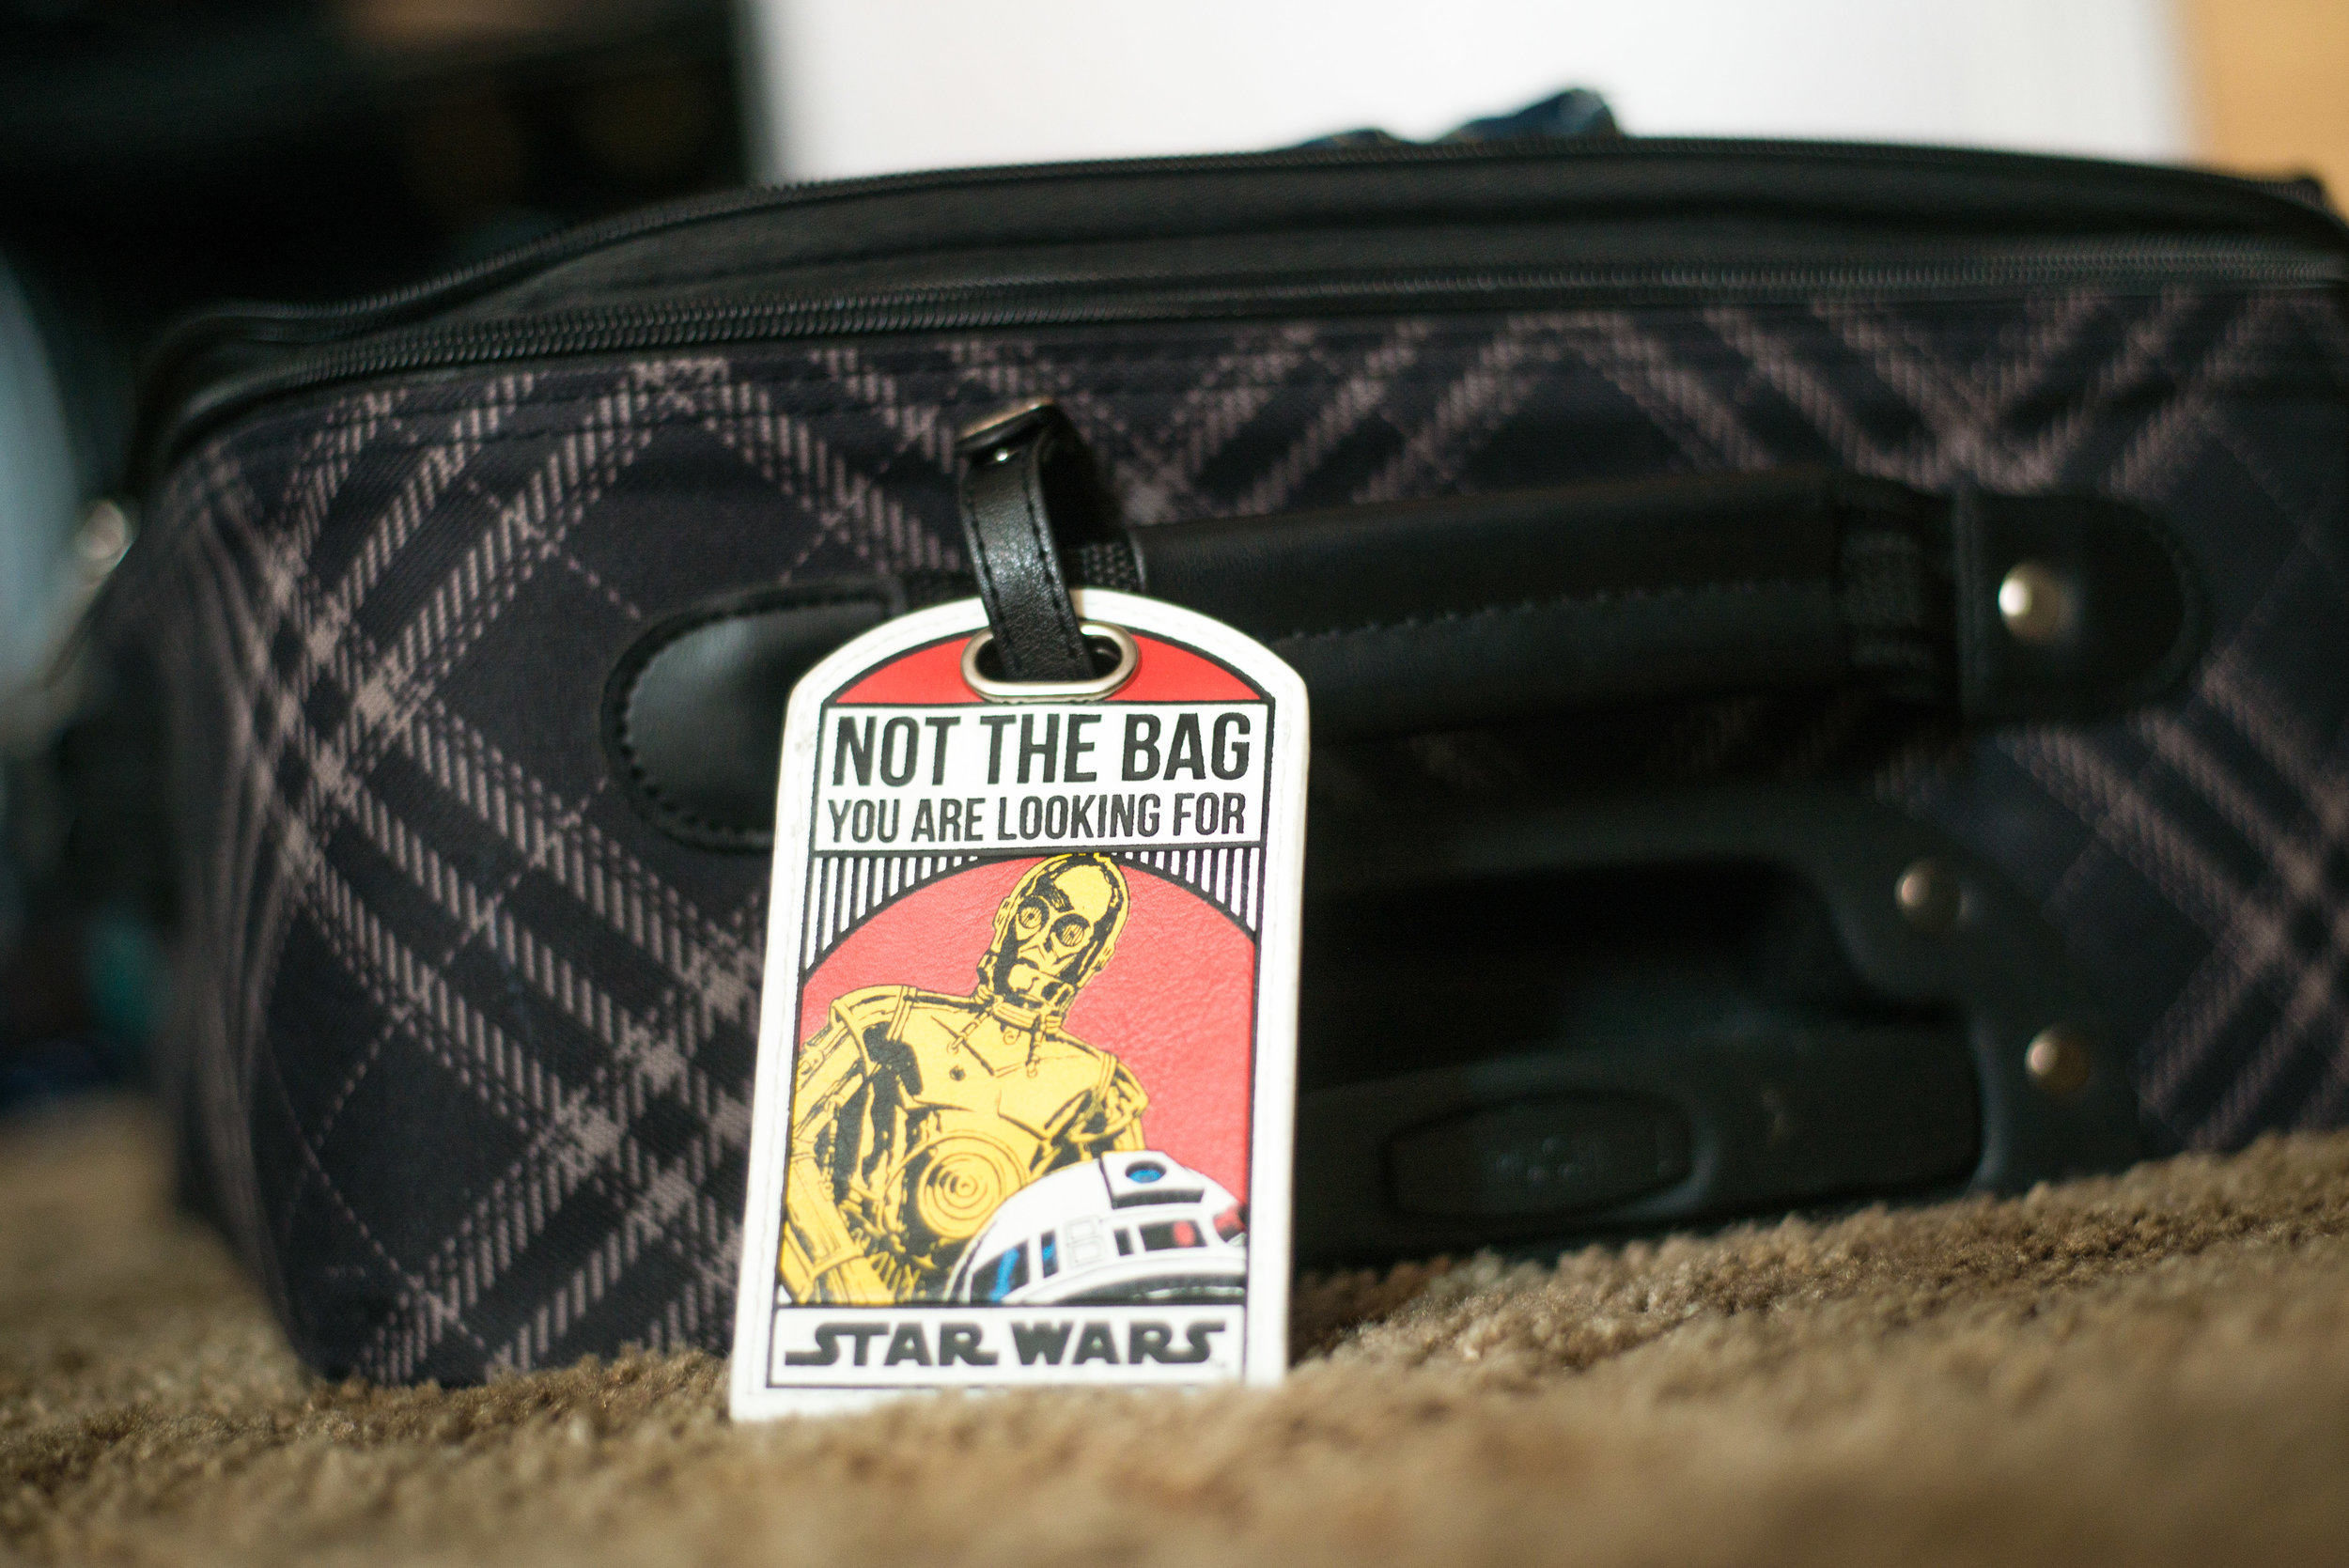 """How to pack for a two week vacation - in a carry on. Luggage tag reads """"Not the bag you are looking for with C3PO and R2D2 from Star Wars."""